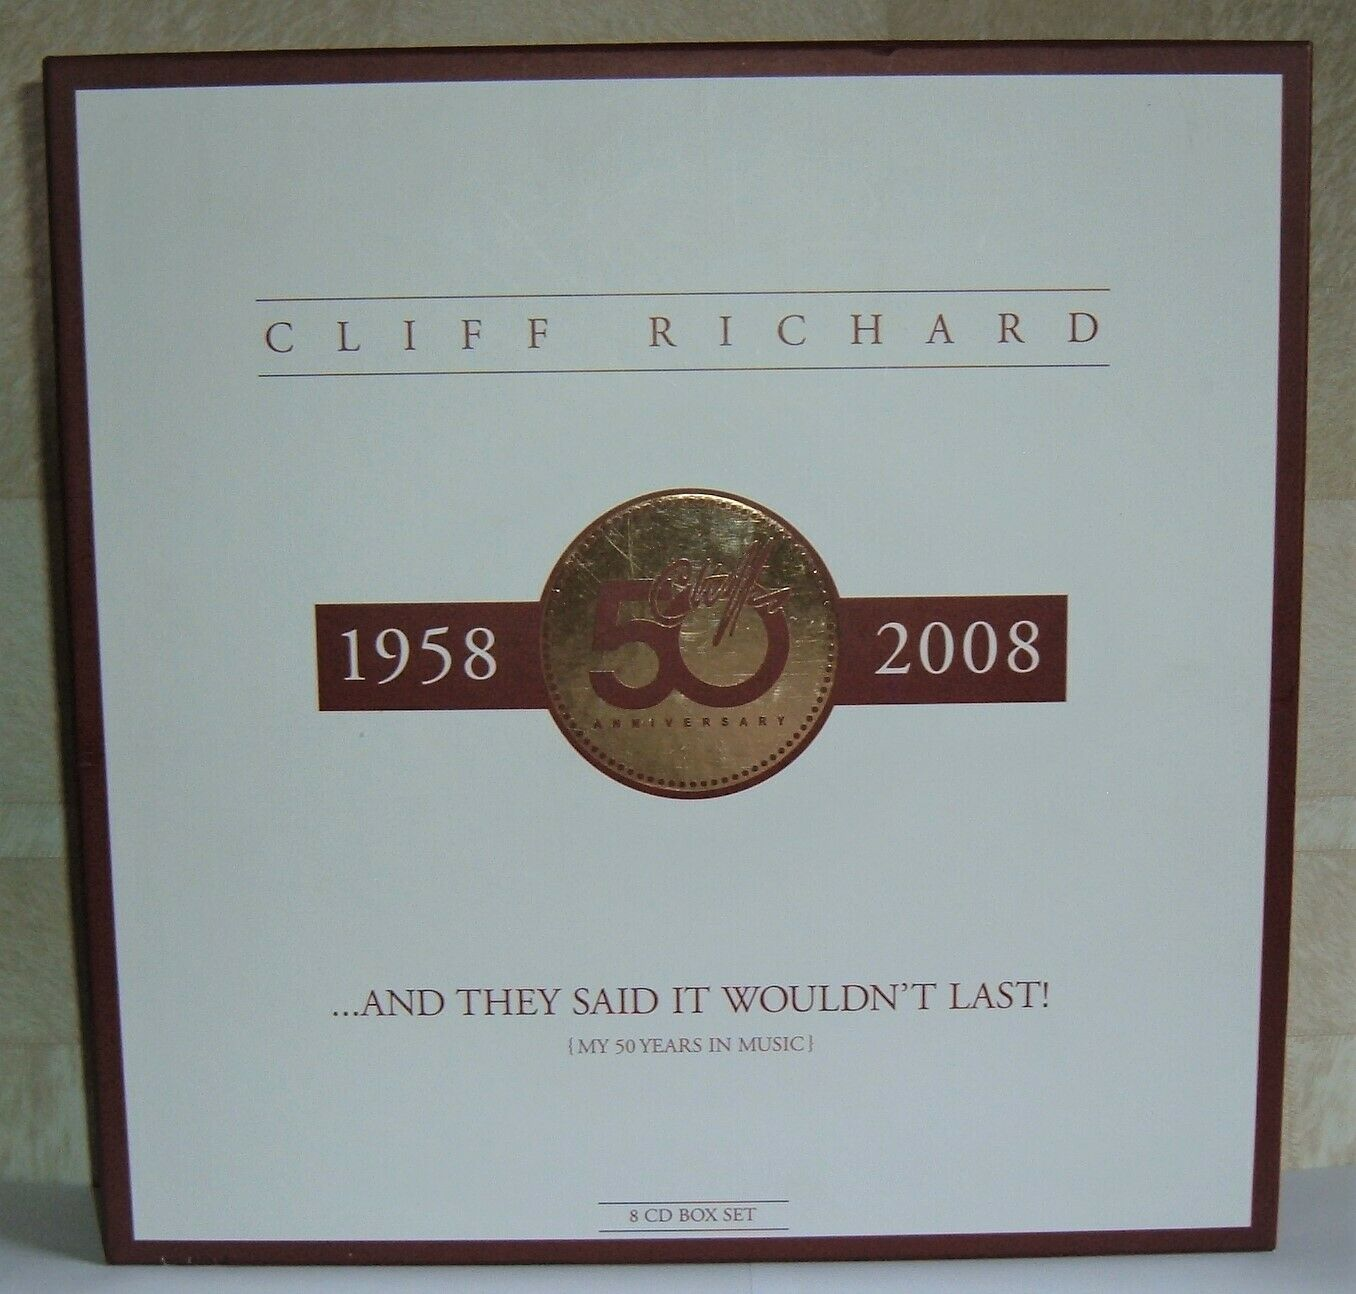 Cliff Richard 50th Anniversary Box Set And They Said It Wouldn't Last. MINT.